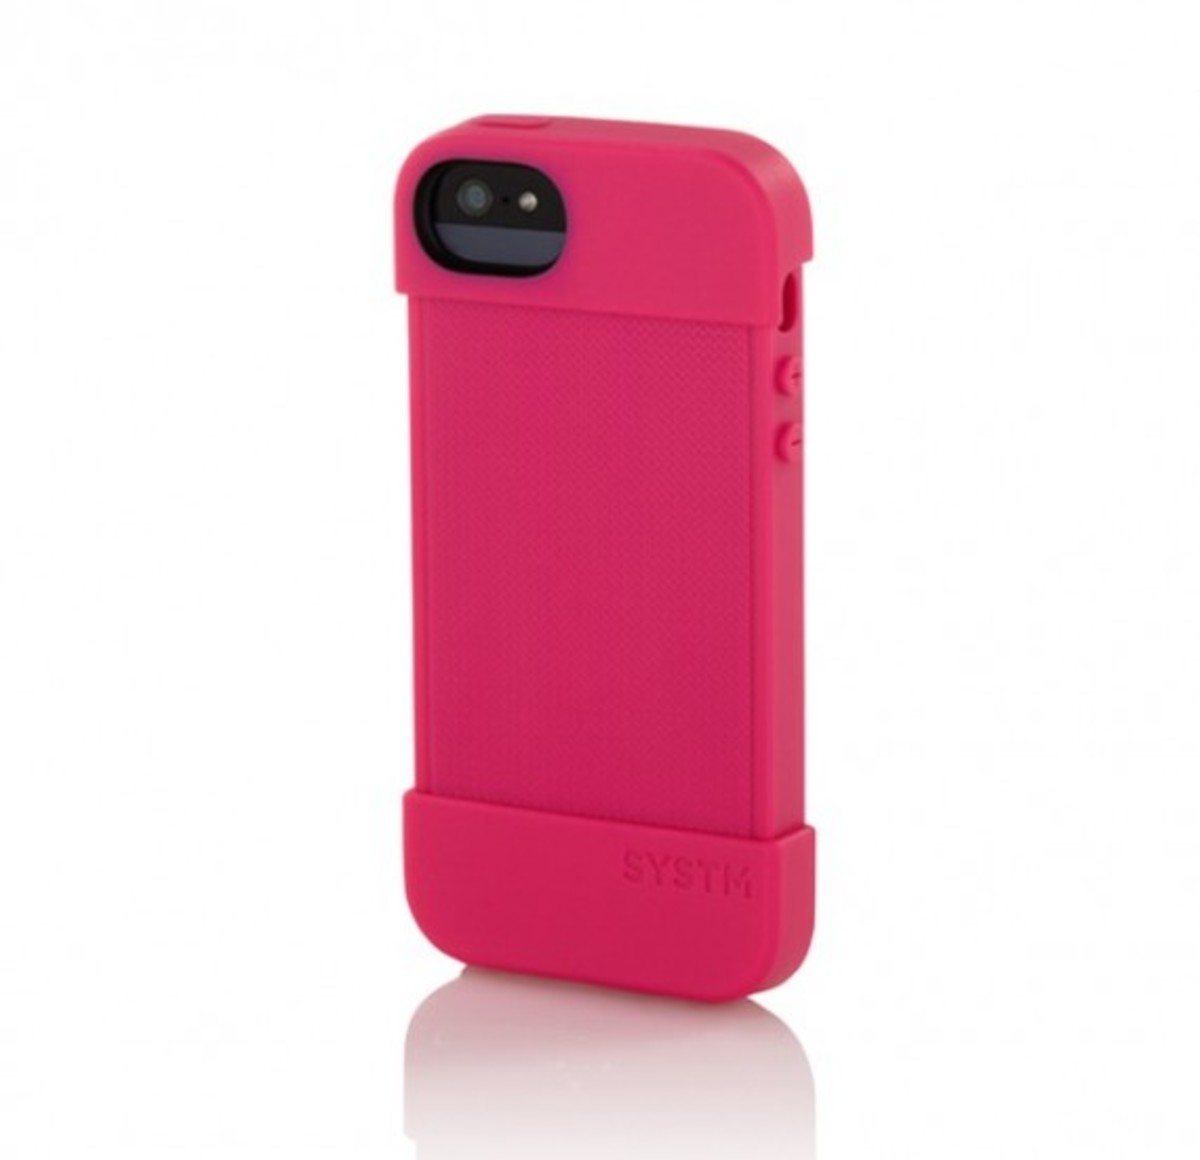 systm-iphone-5-cases-09